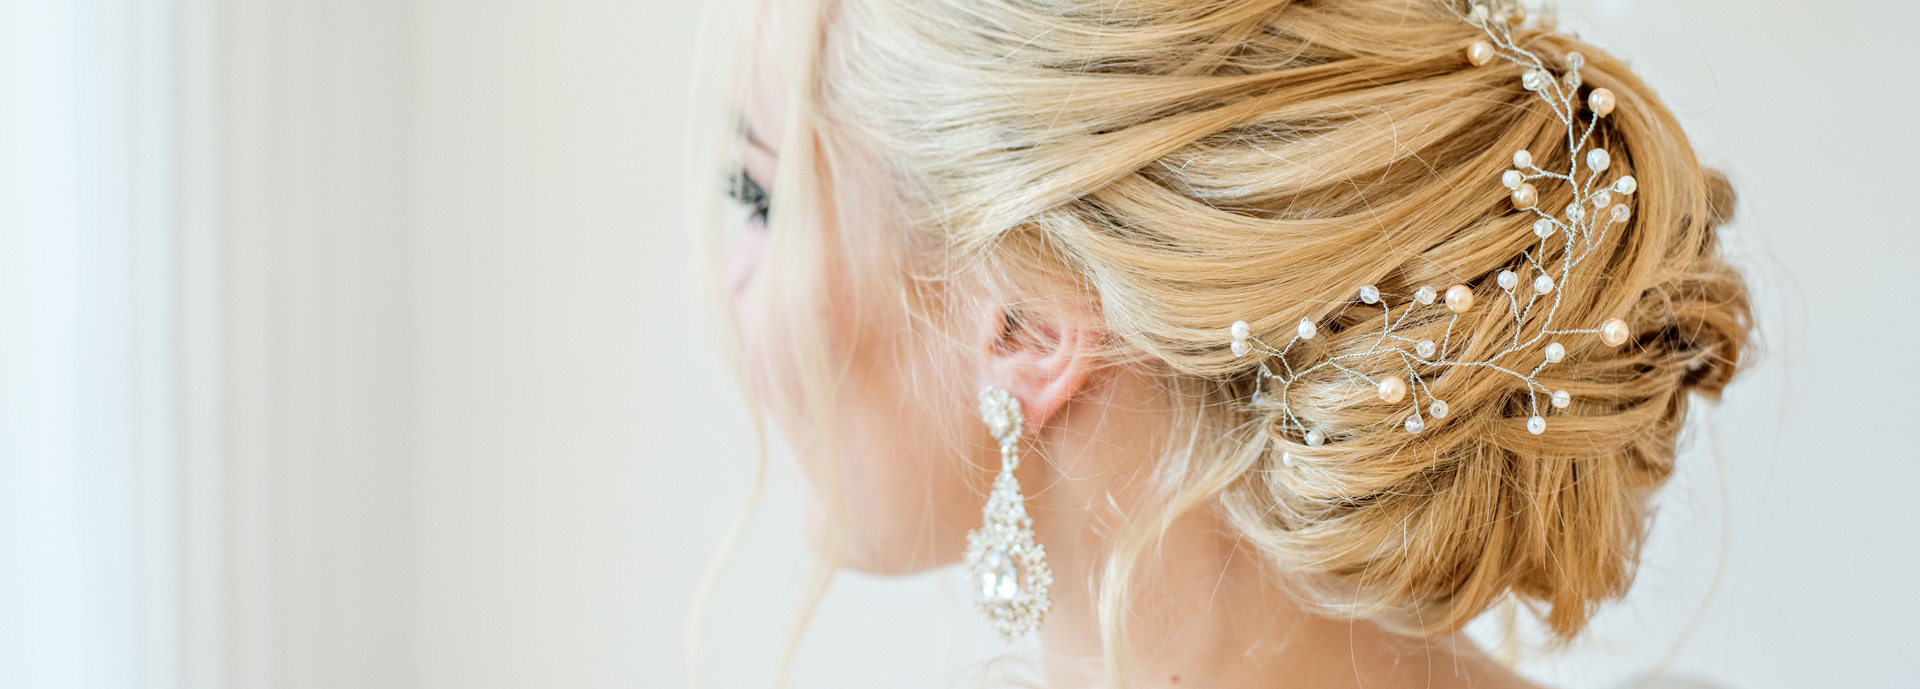 Wedding Hair and Makeup Berkshire